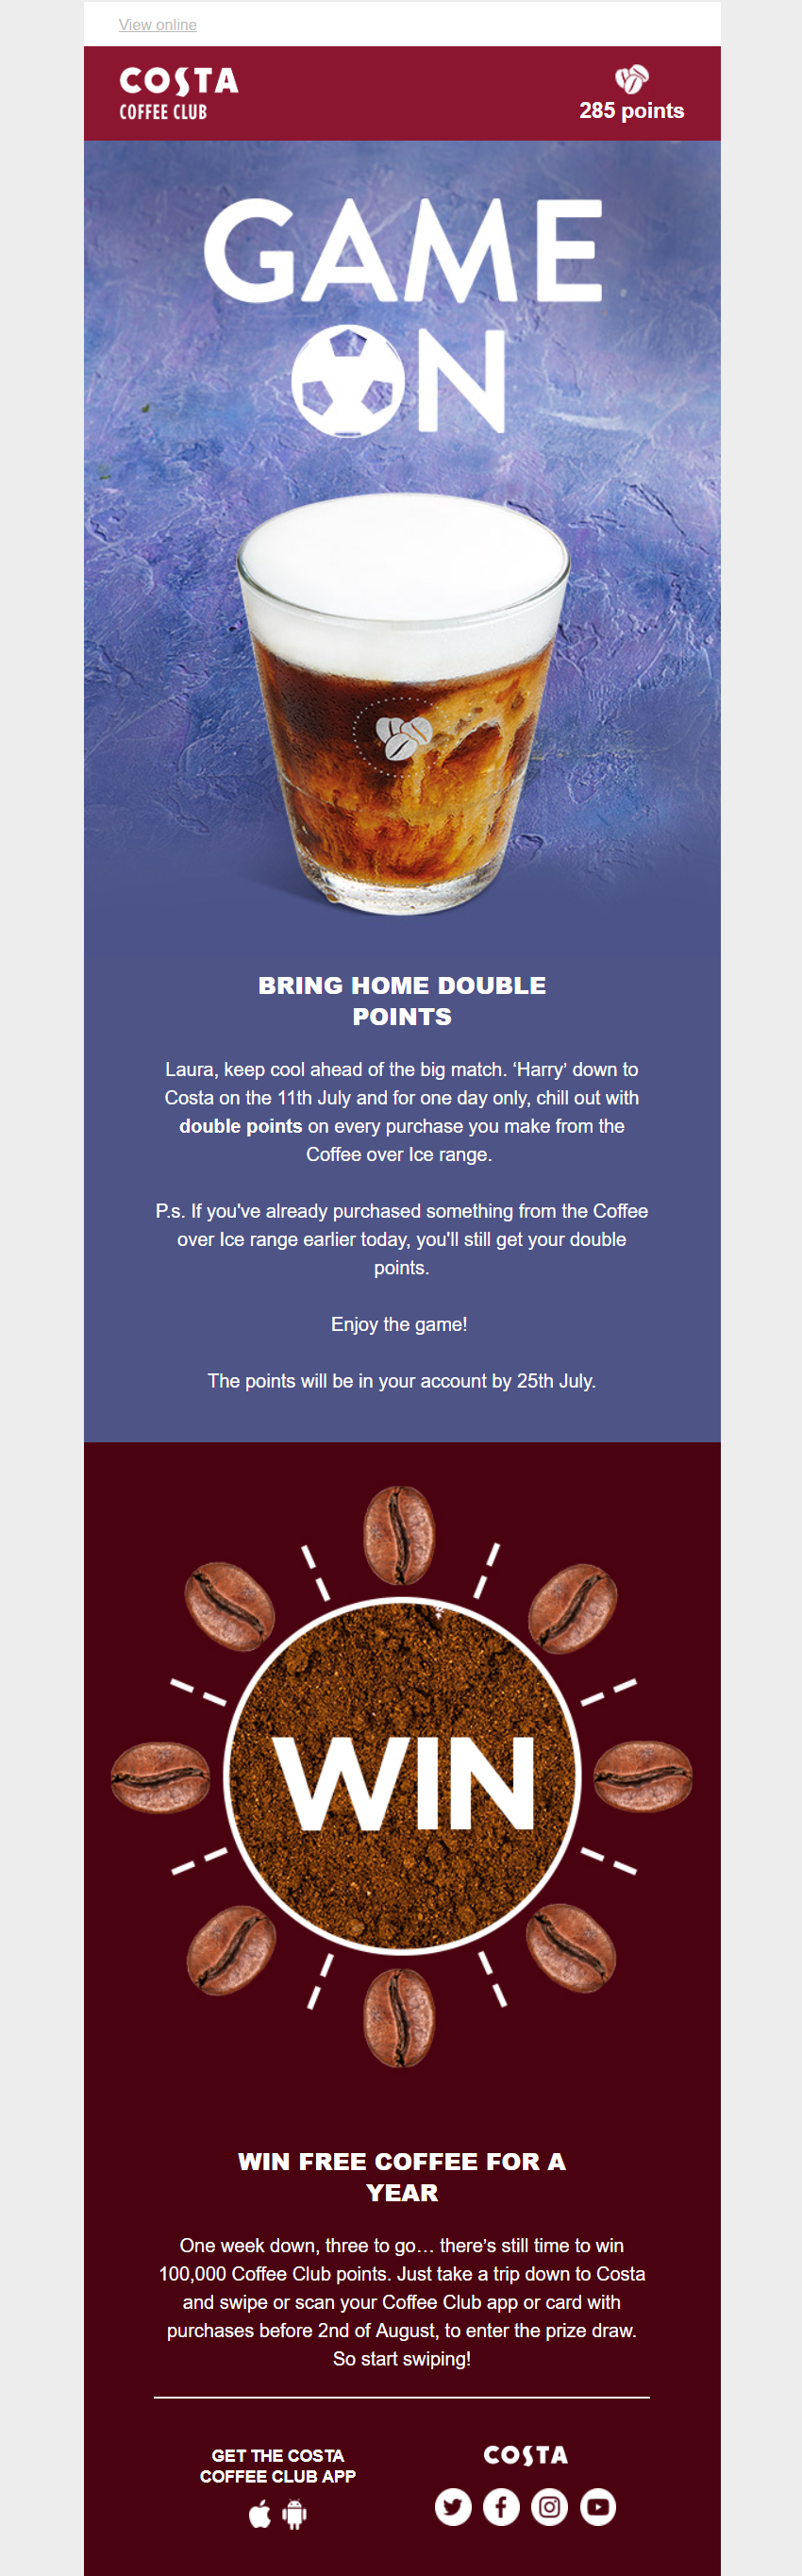 Offer and competition email from Costa Email Marketing